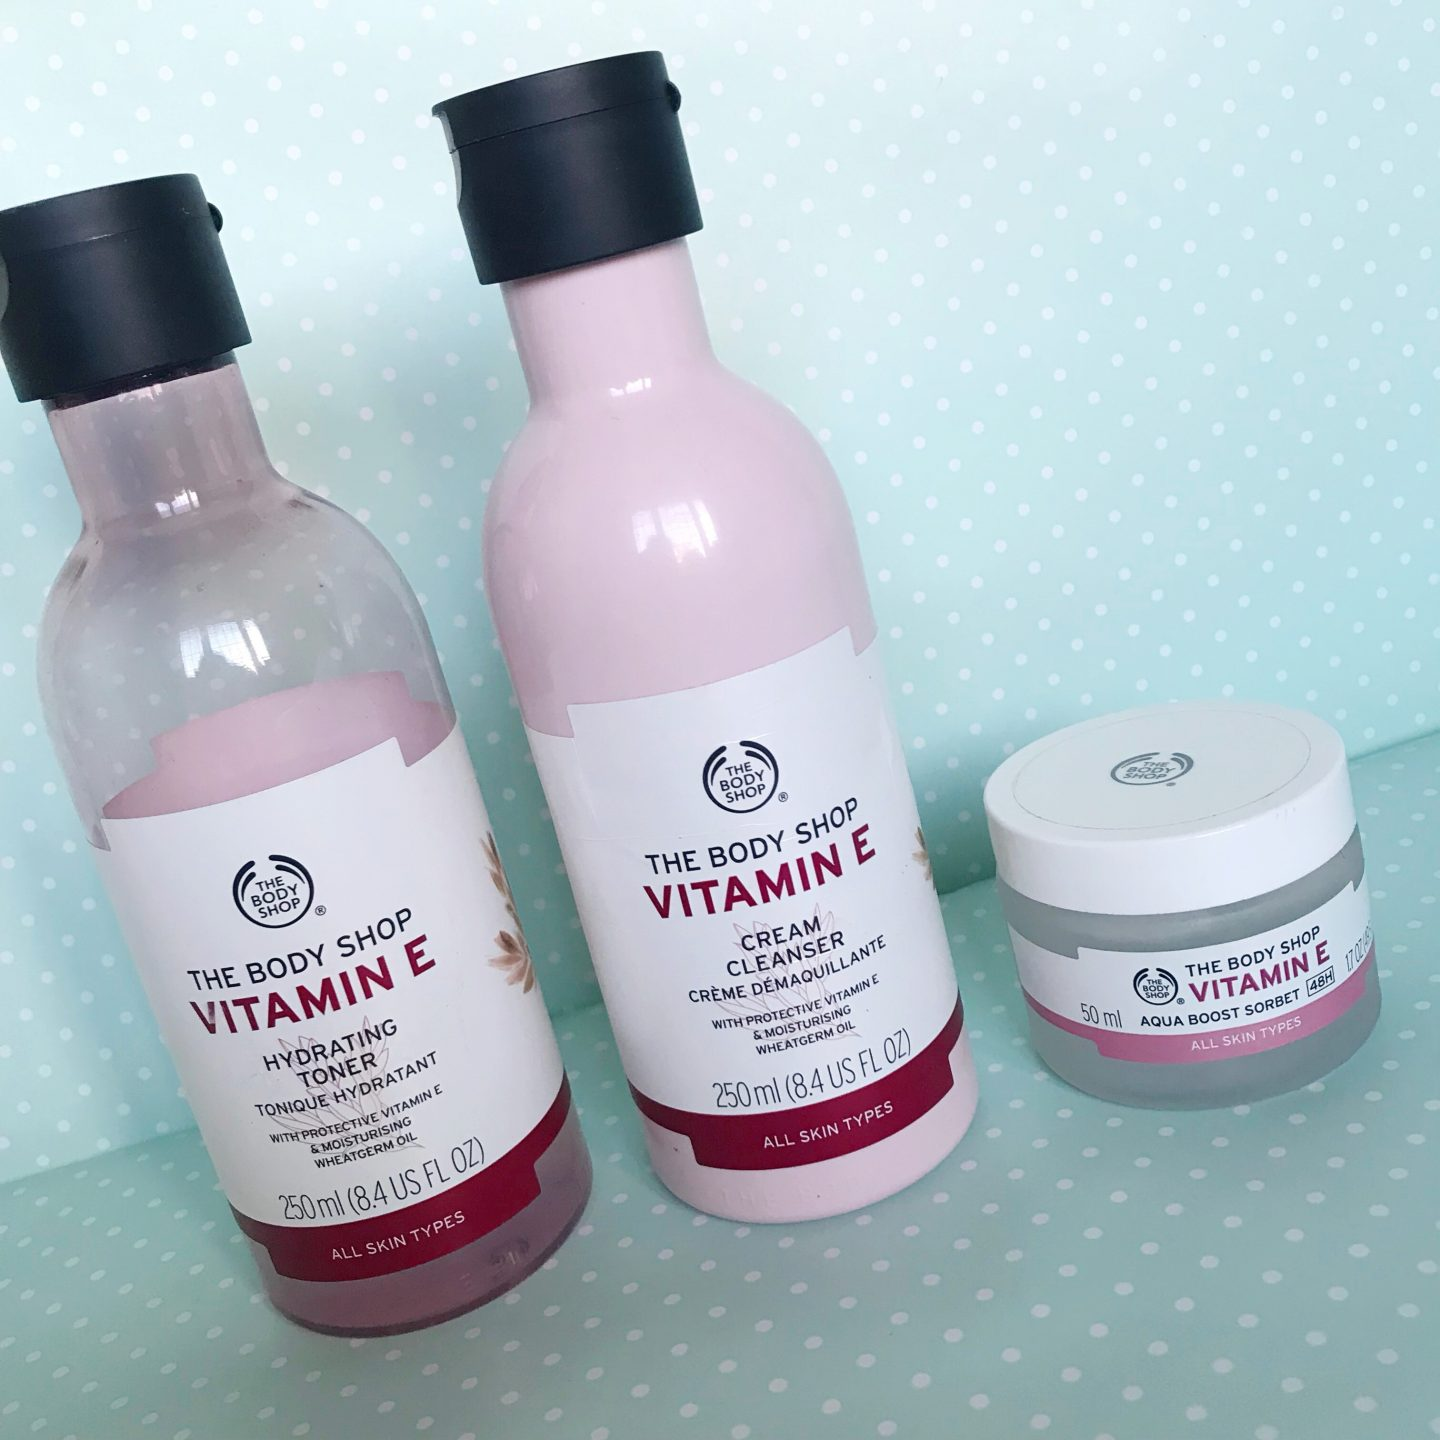 The Body Shop Vitamin E Range | Beauty and Skincare